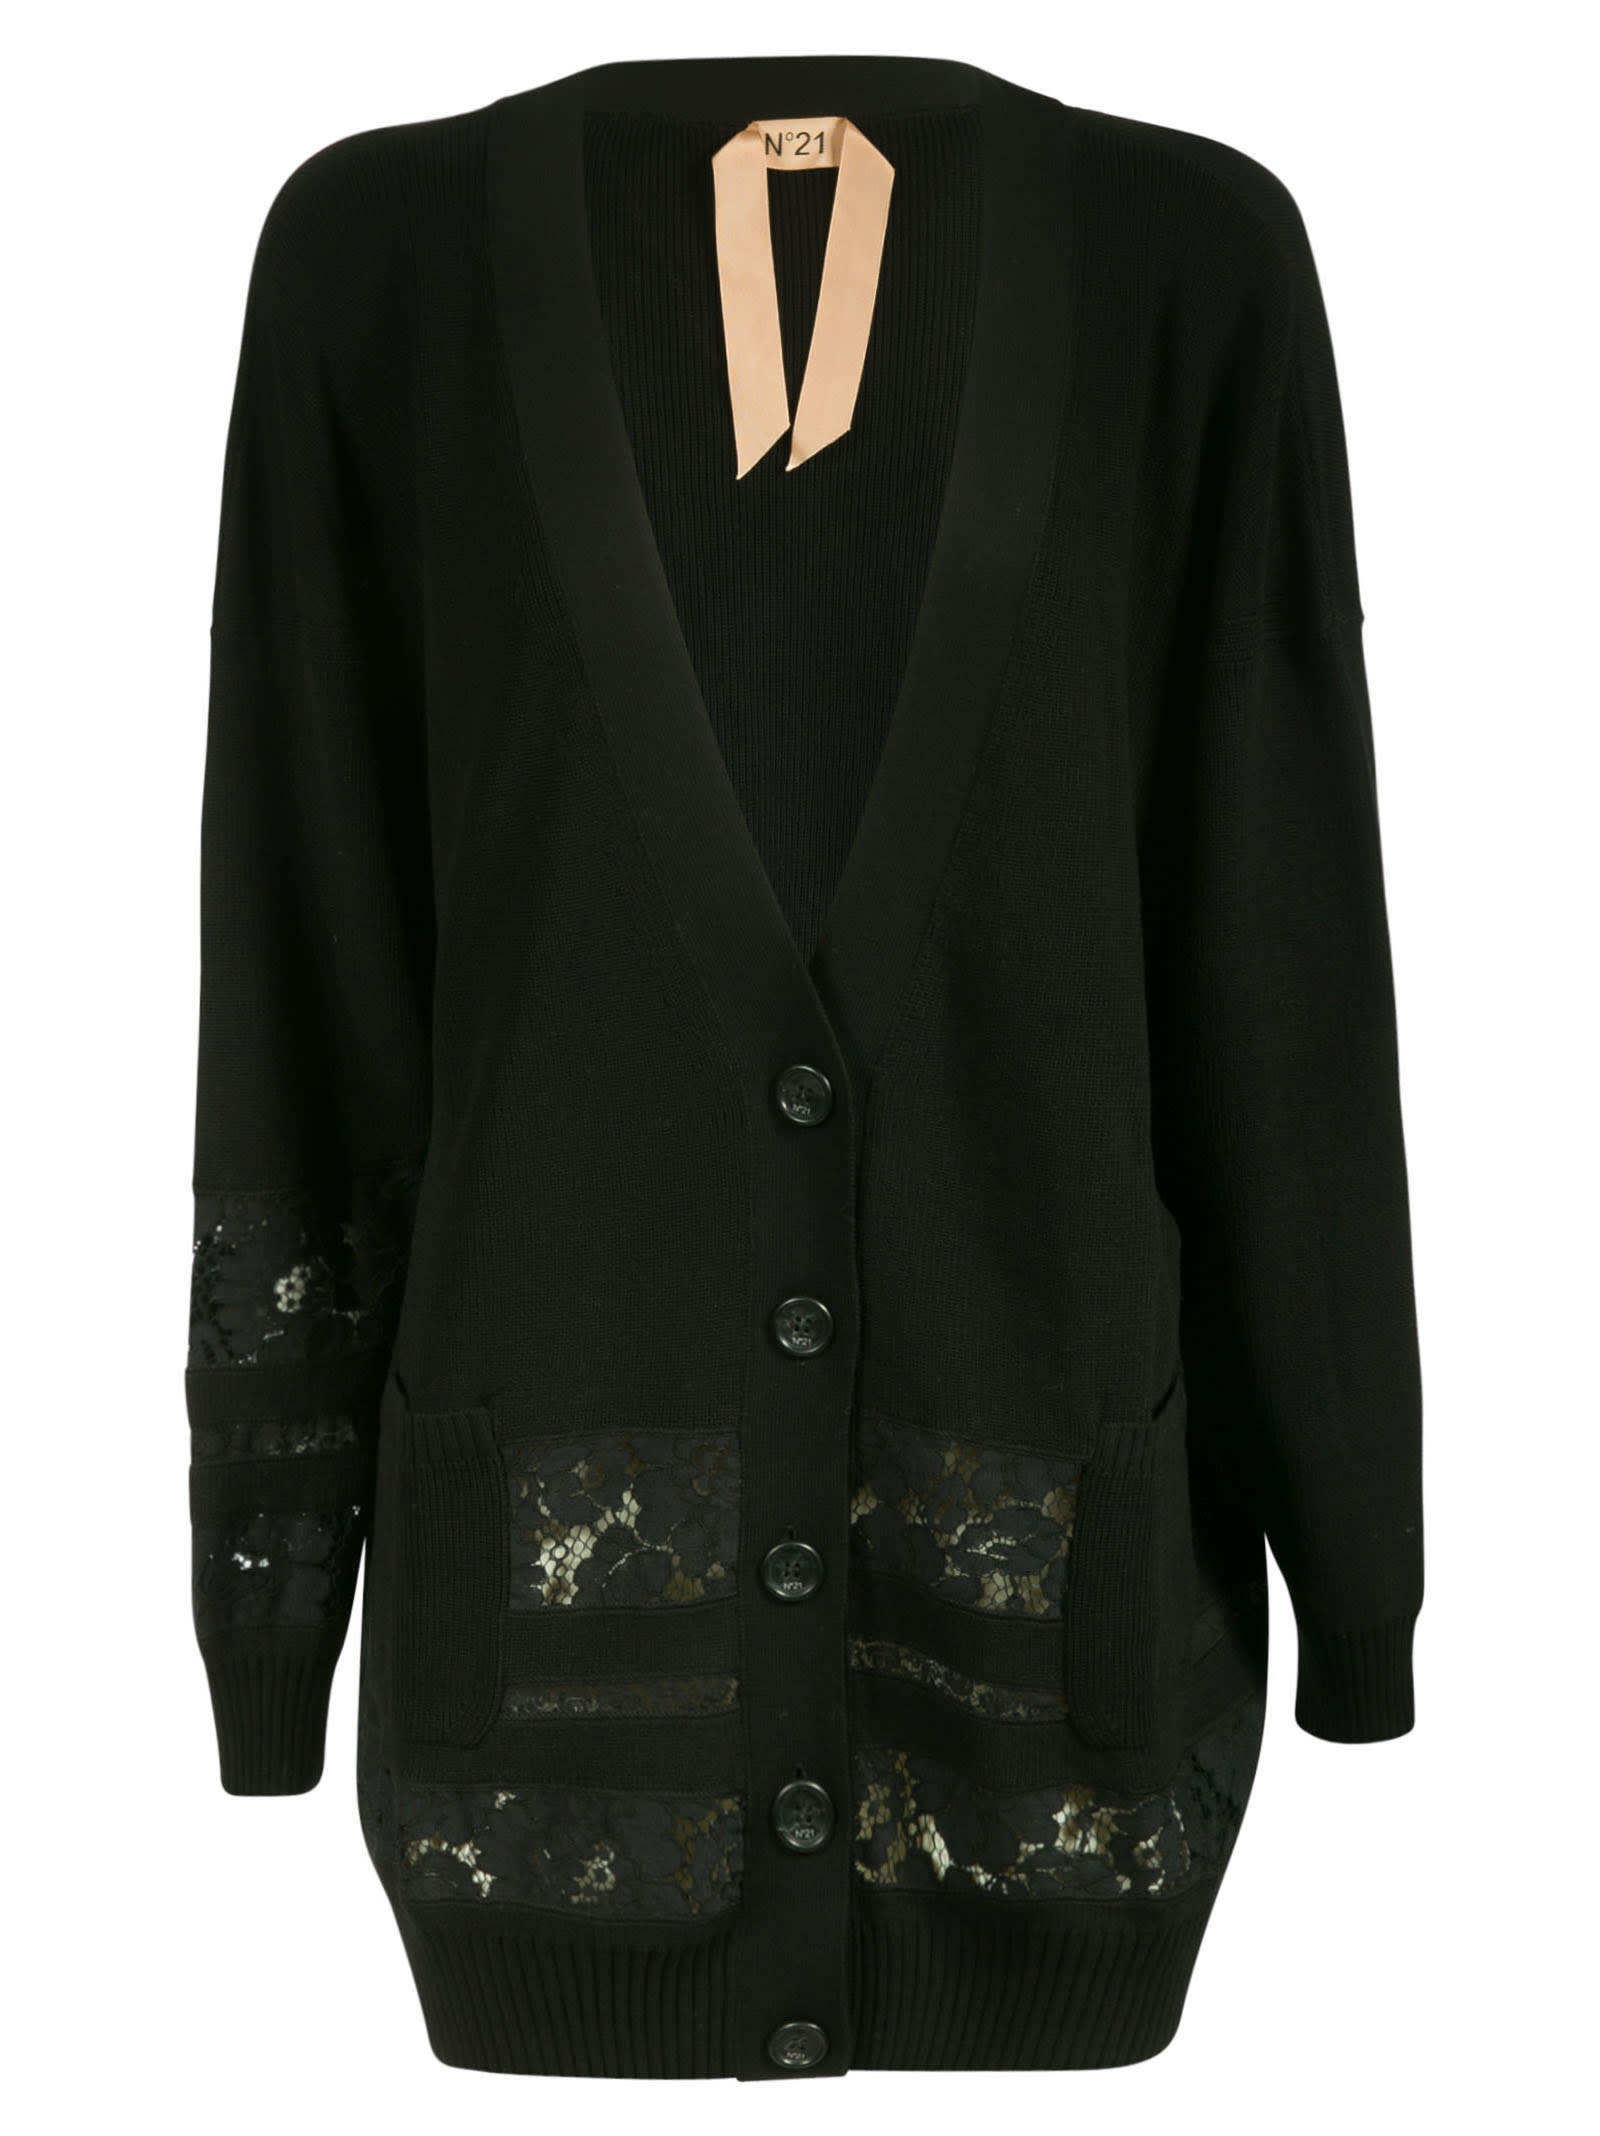 N°21 FLORAL DETAIL BUTTONED CARDIGAN